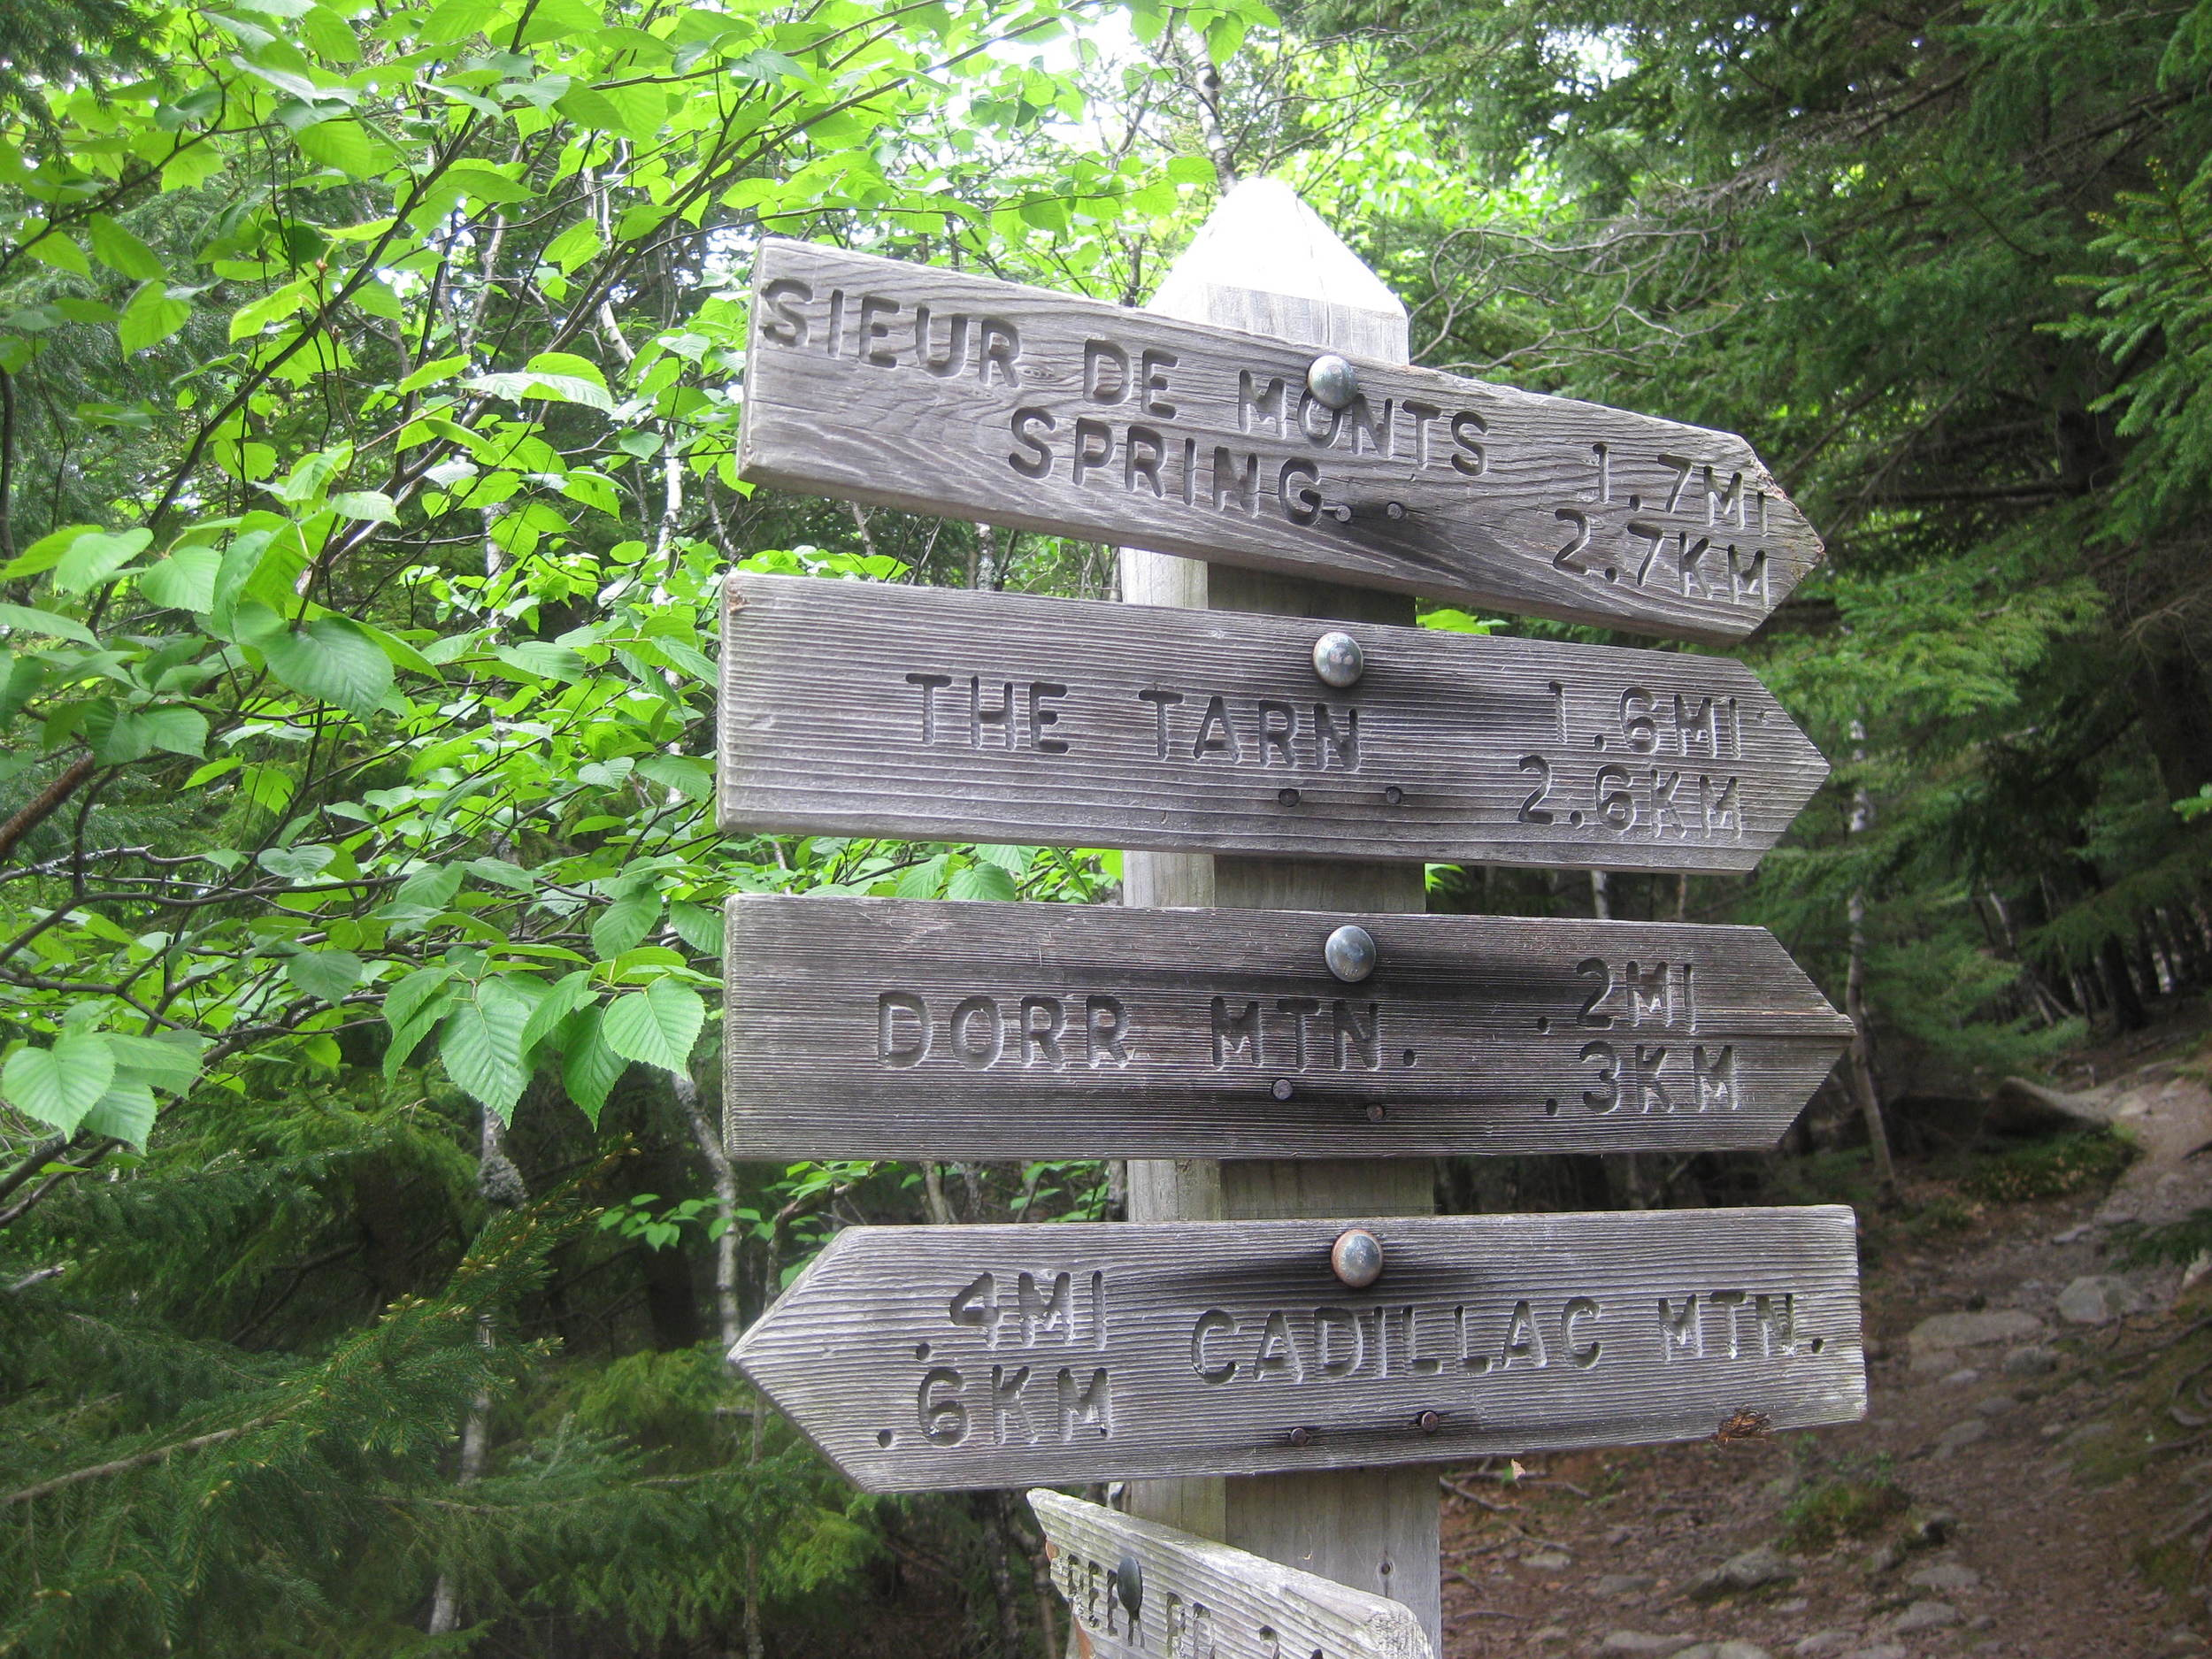 This way to Cadillac Mountain